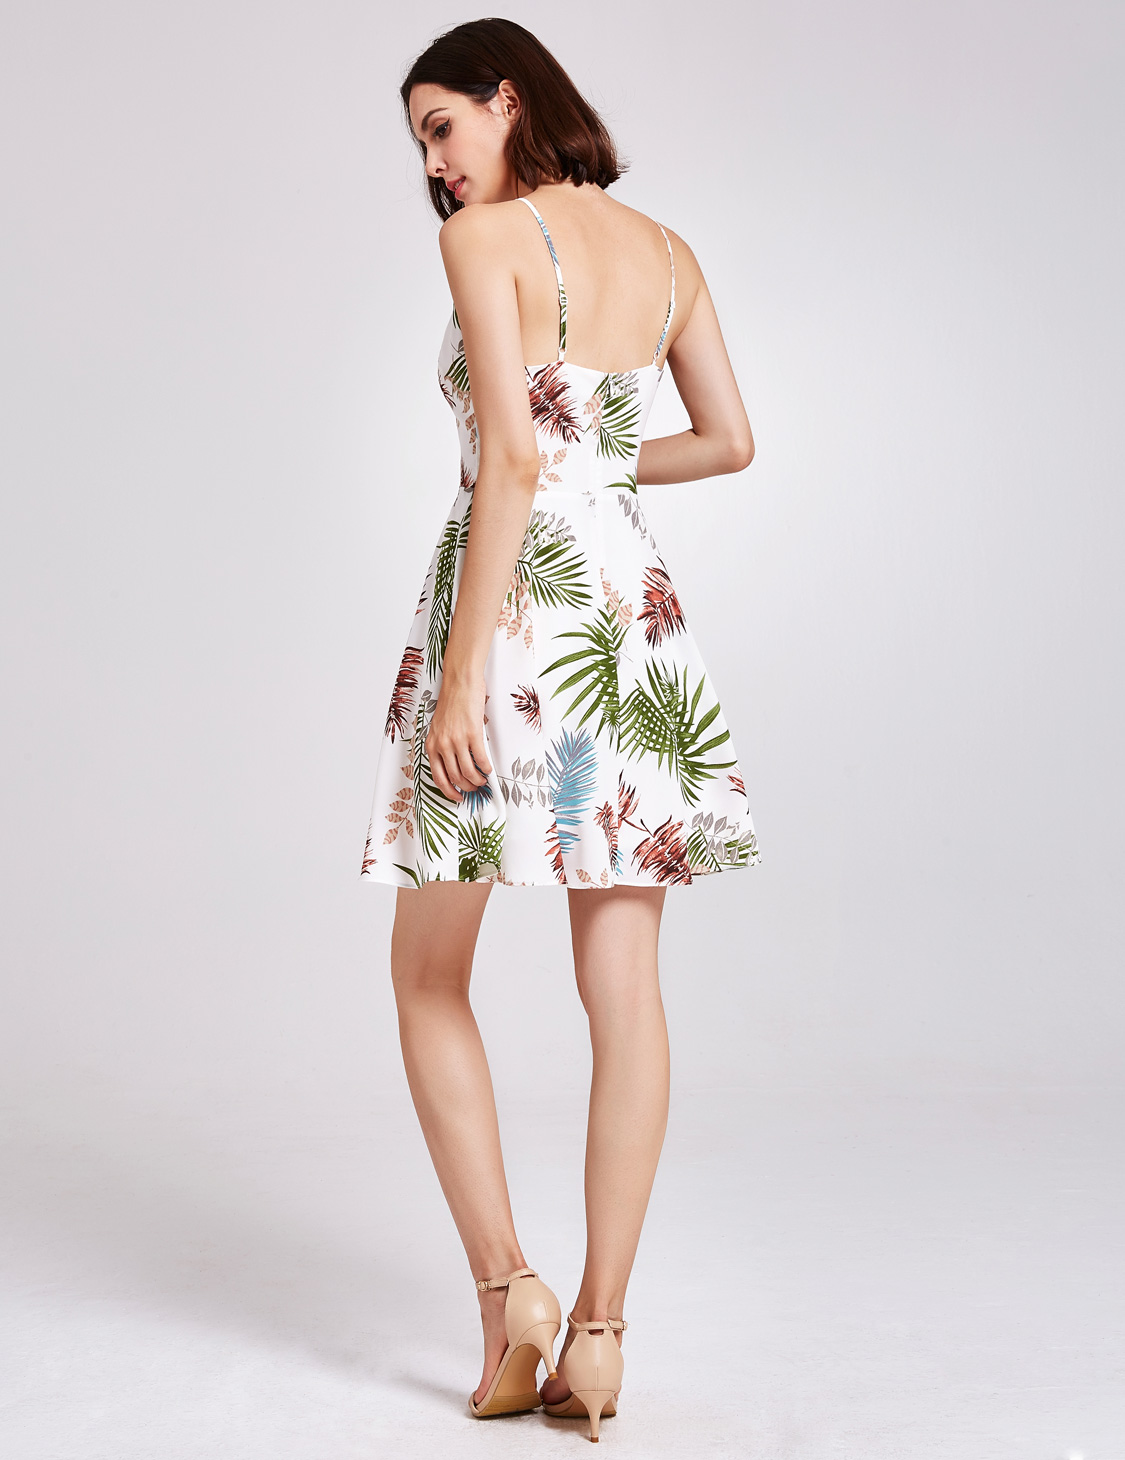 Alisa-Pan-New-Short-Summer-Beach-Dresses-Printed-Halter-Casual-Skirt-05937